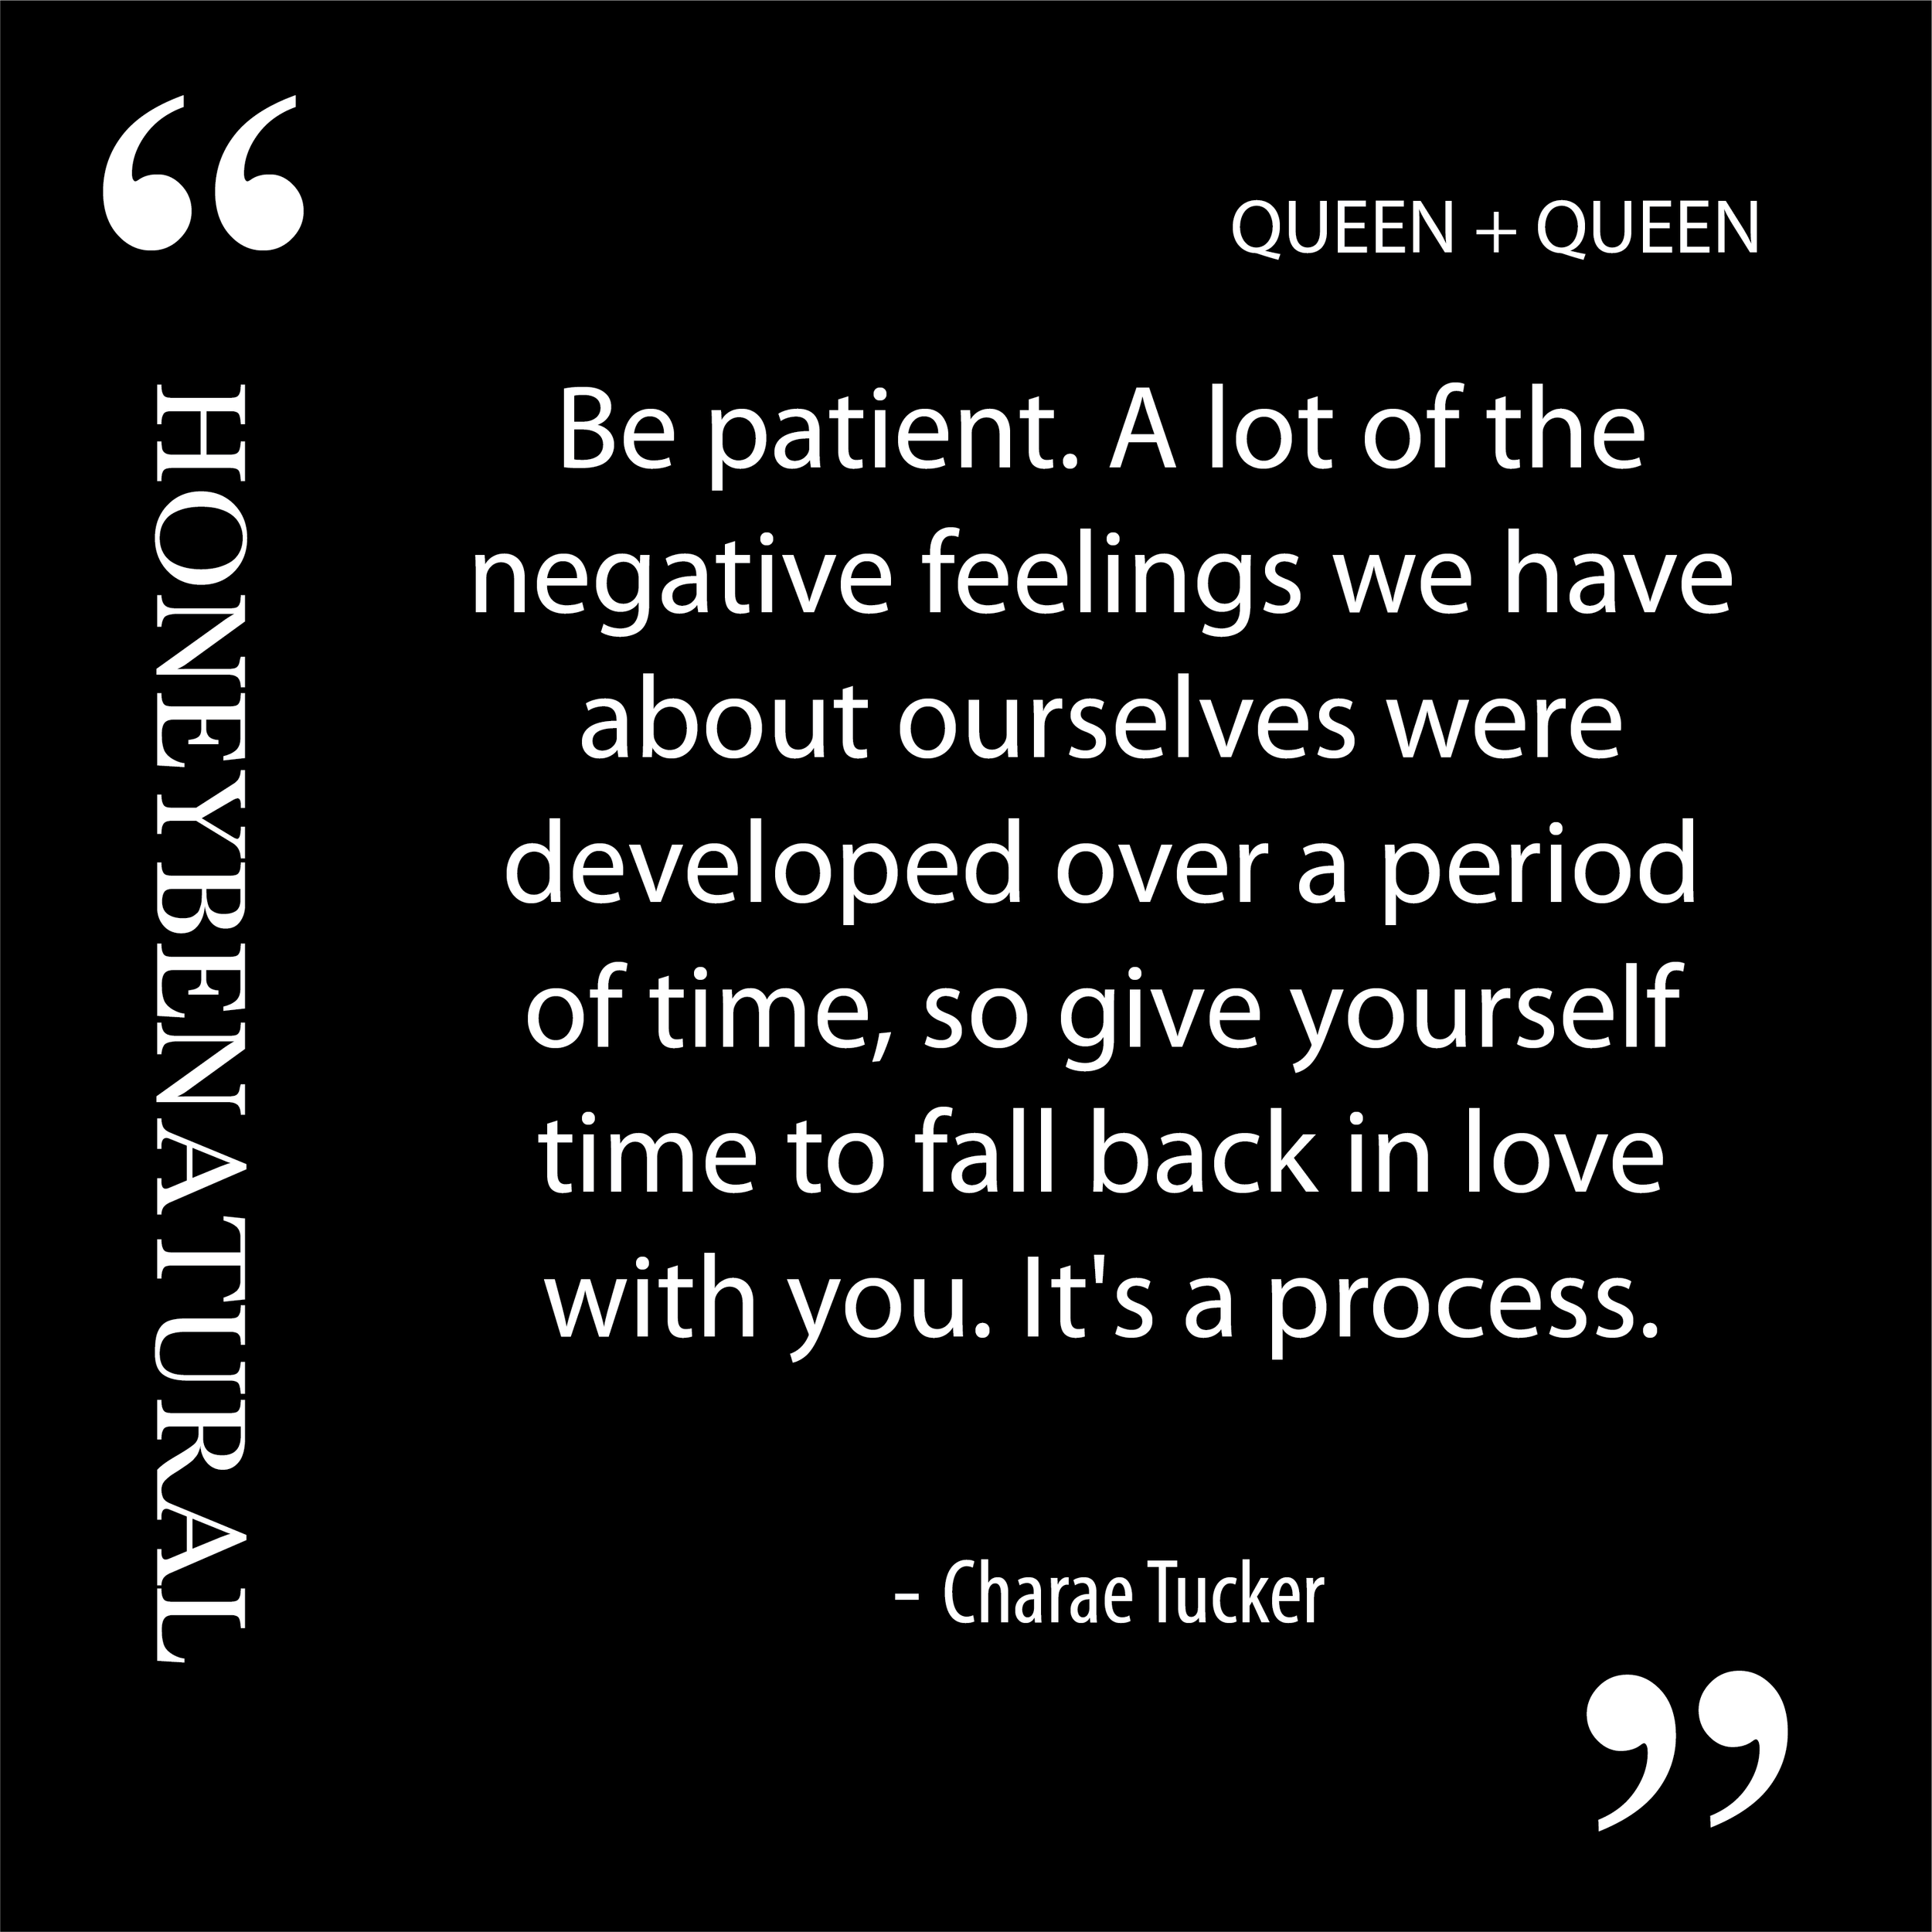 QueenPlusQueen_July 2019_Charae Tucker_Black Graphic-05.png